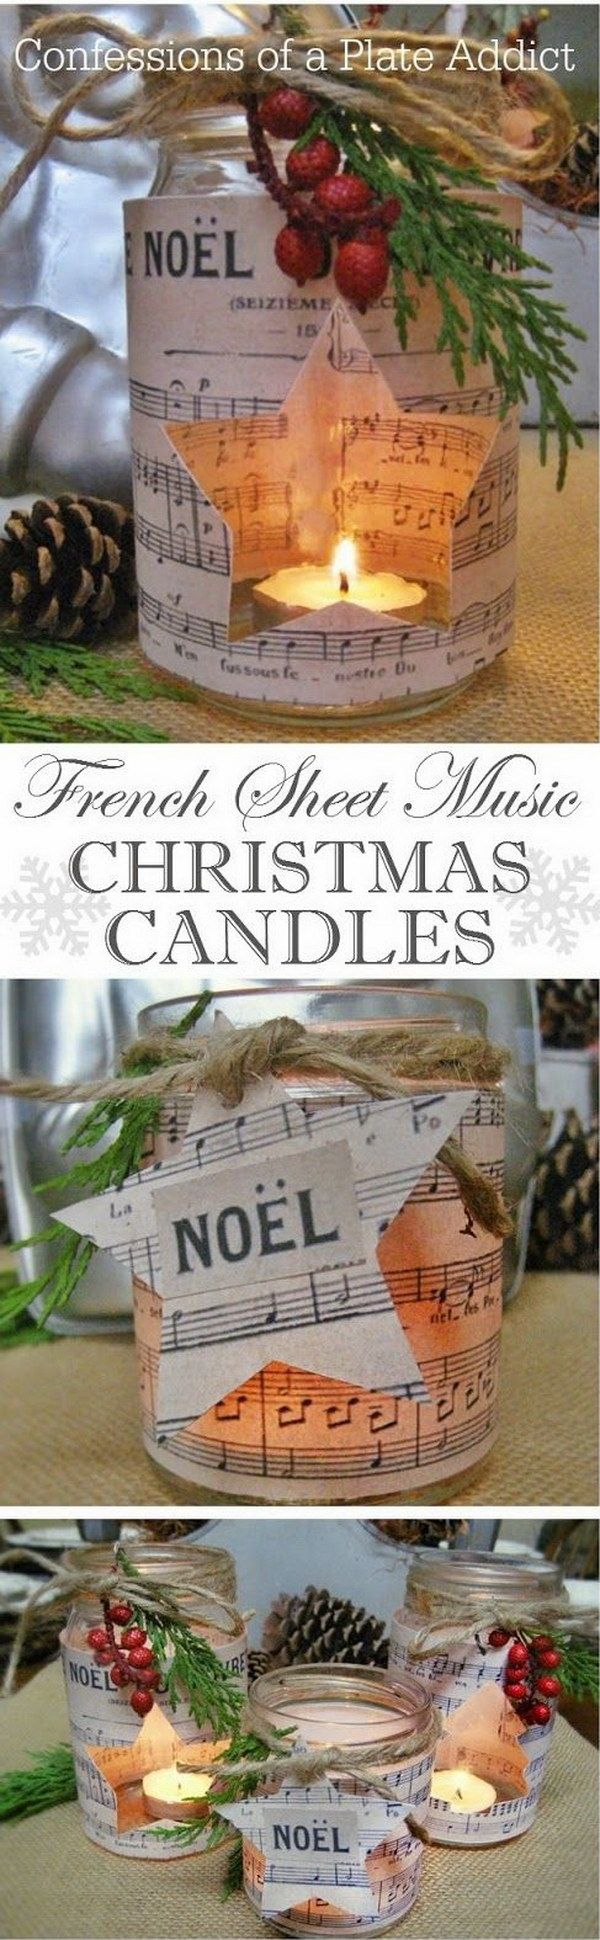 French Sheet Music Christmas Candles.